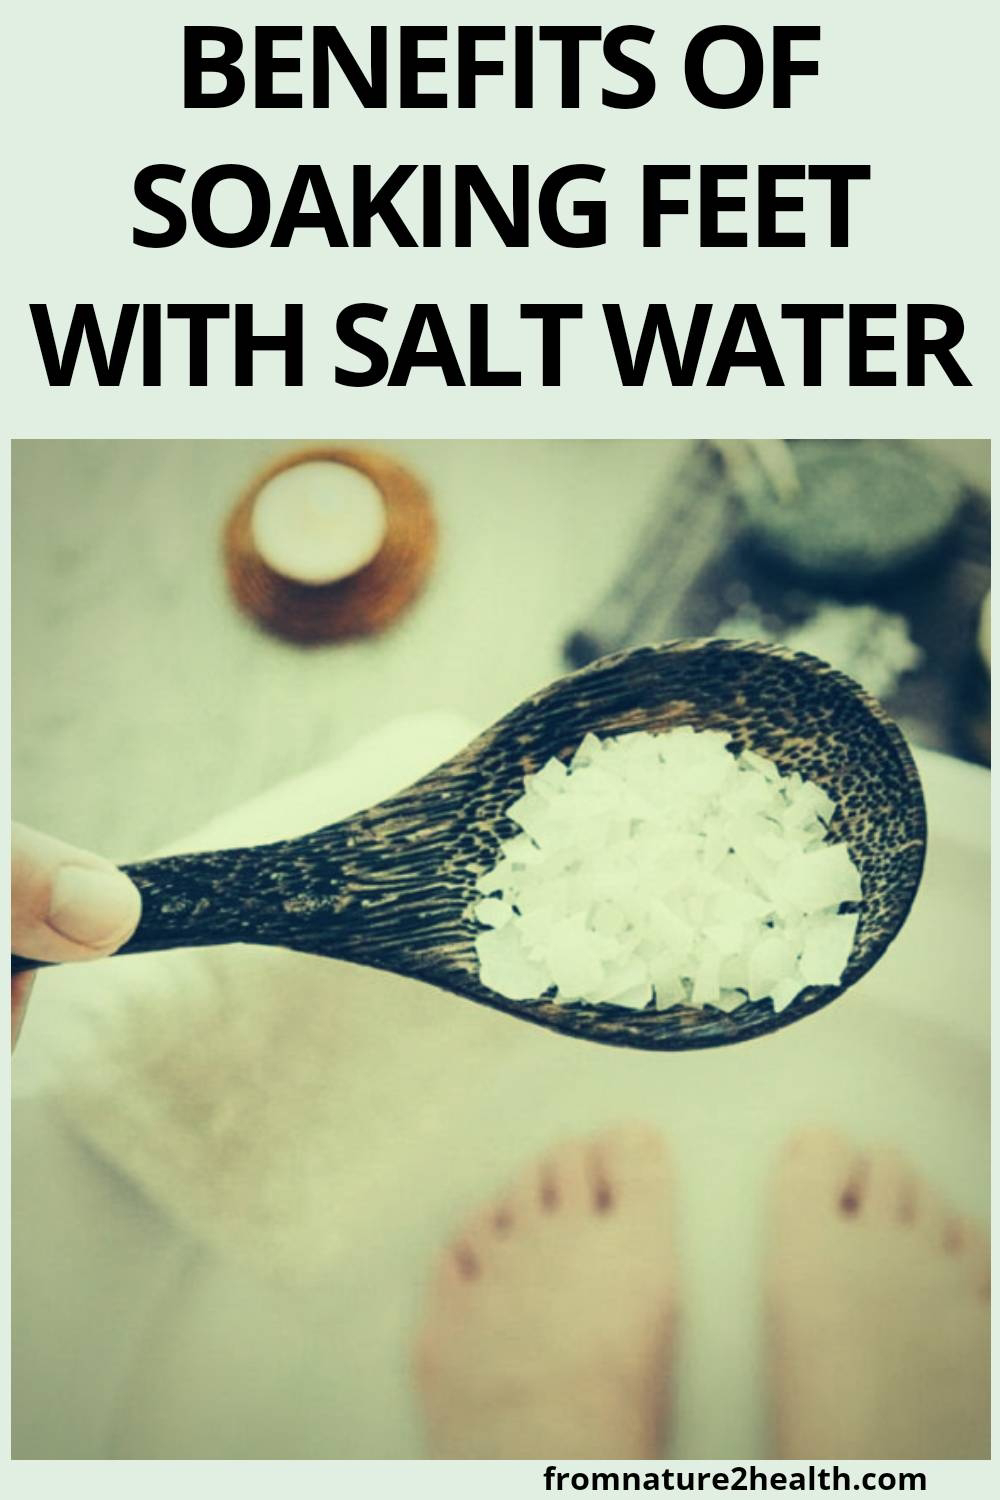 Benefits of Soaking Feet with Salt Water